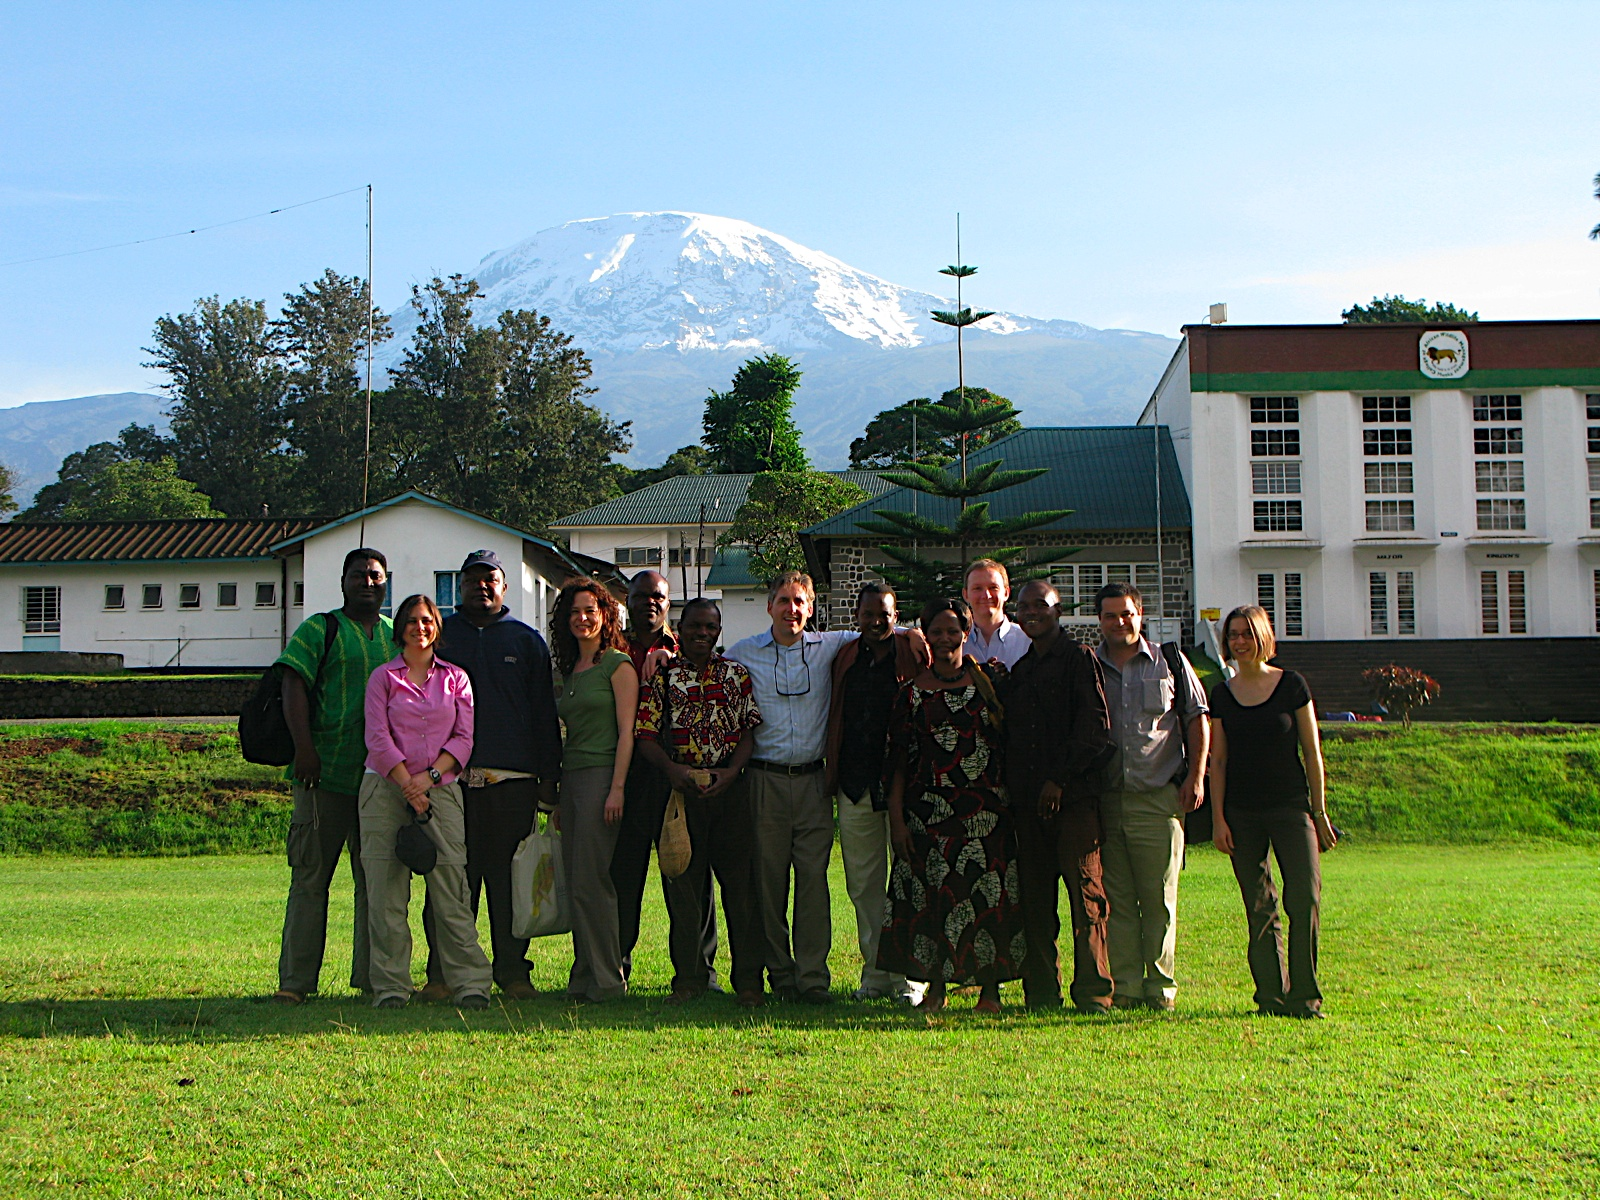 The core workshop group at Mweka College in 2008. That's me on the left and Mt. Kilimanjaro in the background.